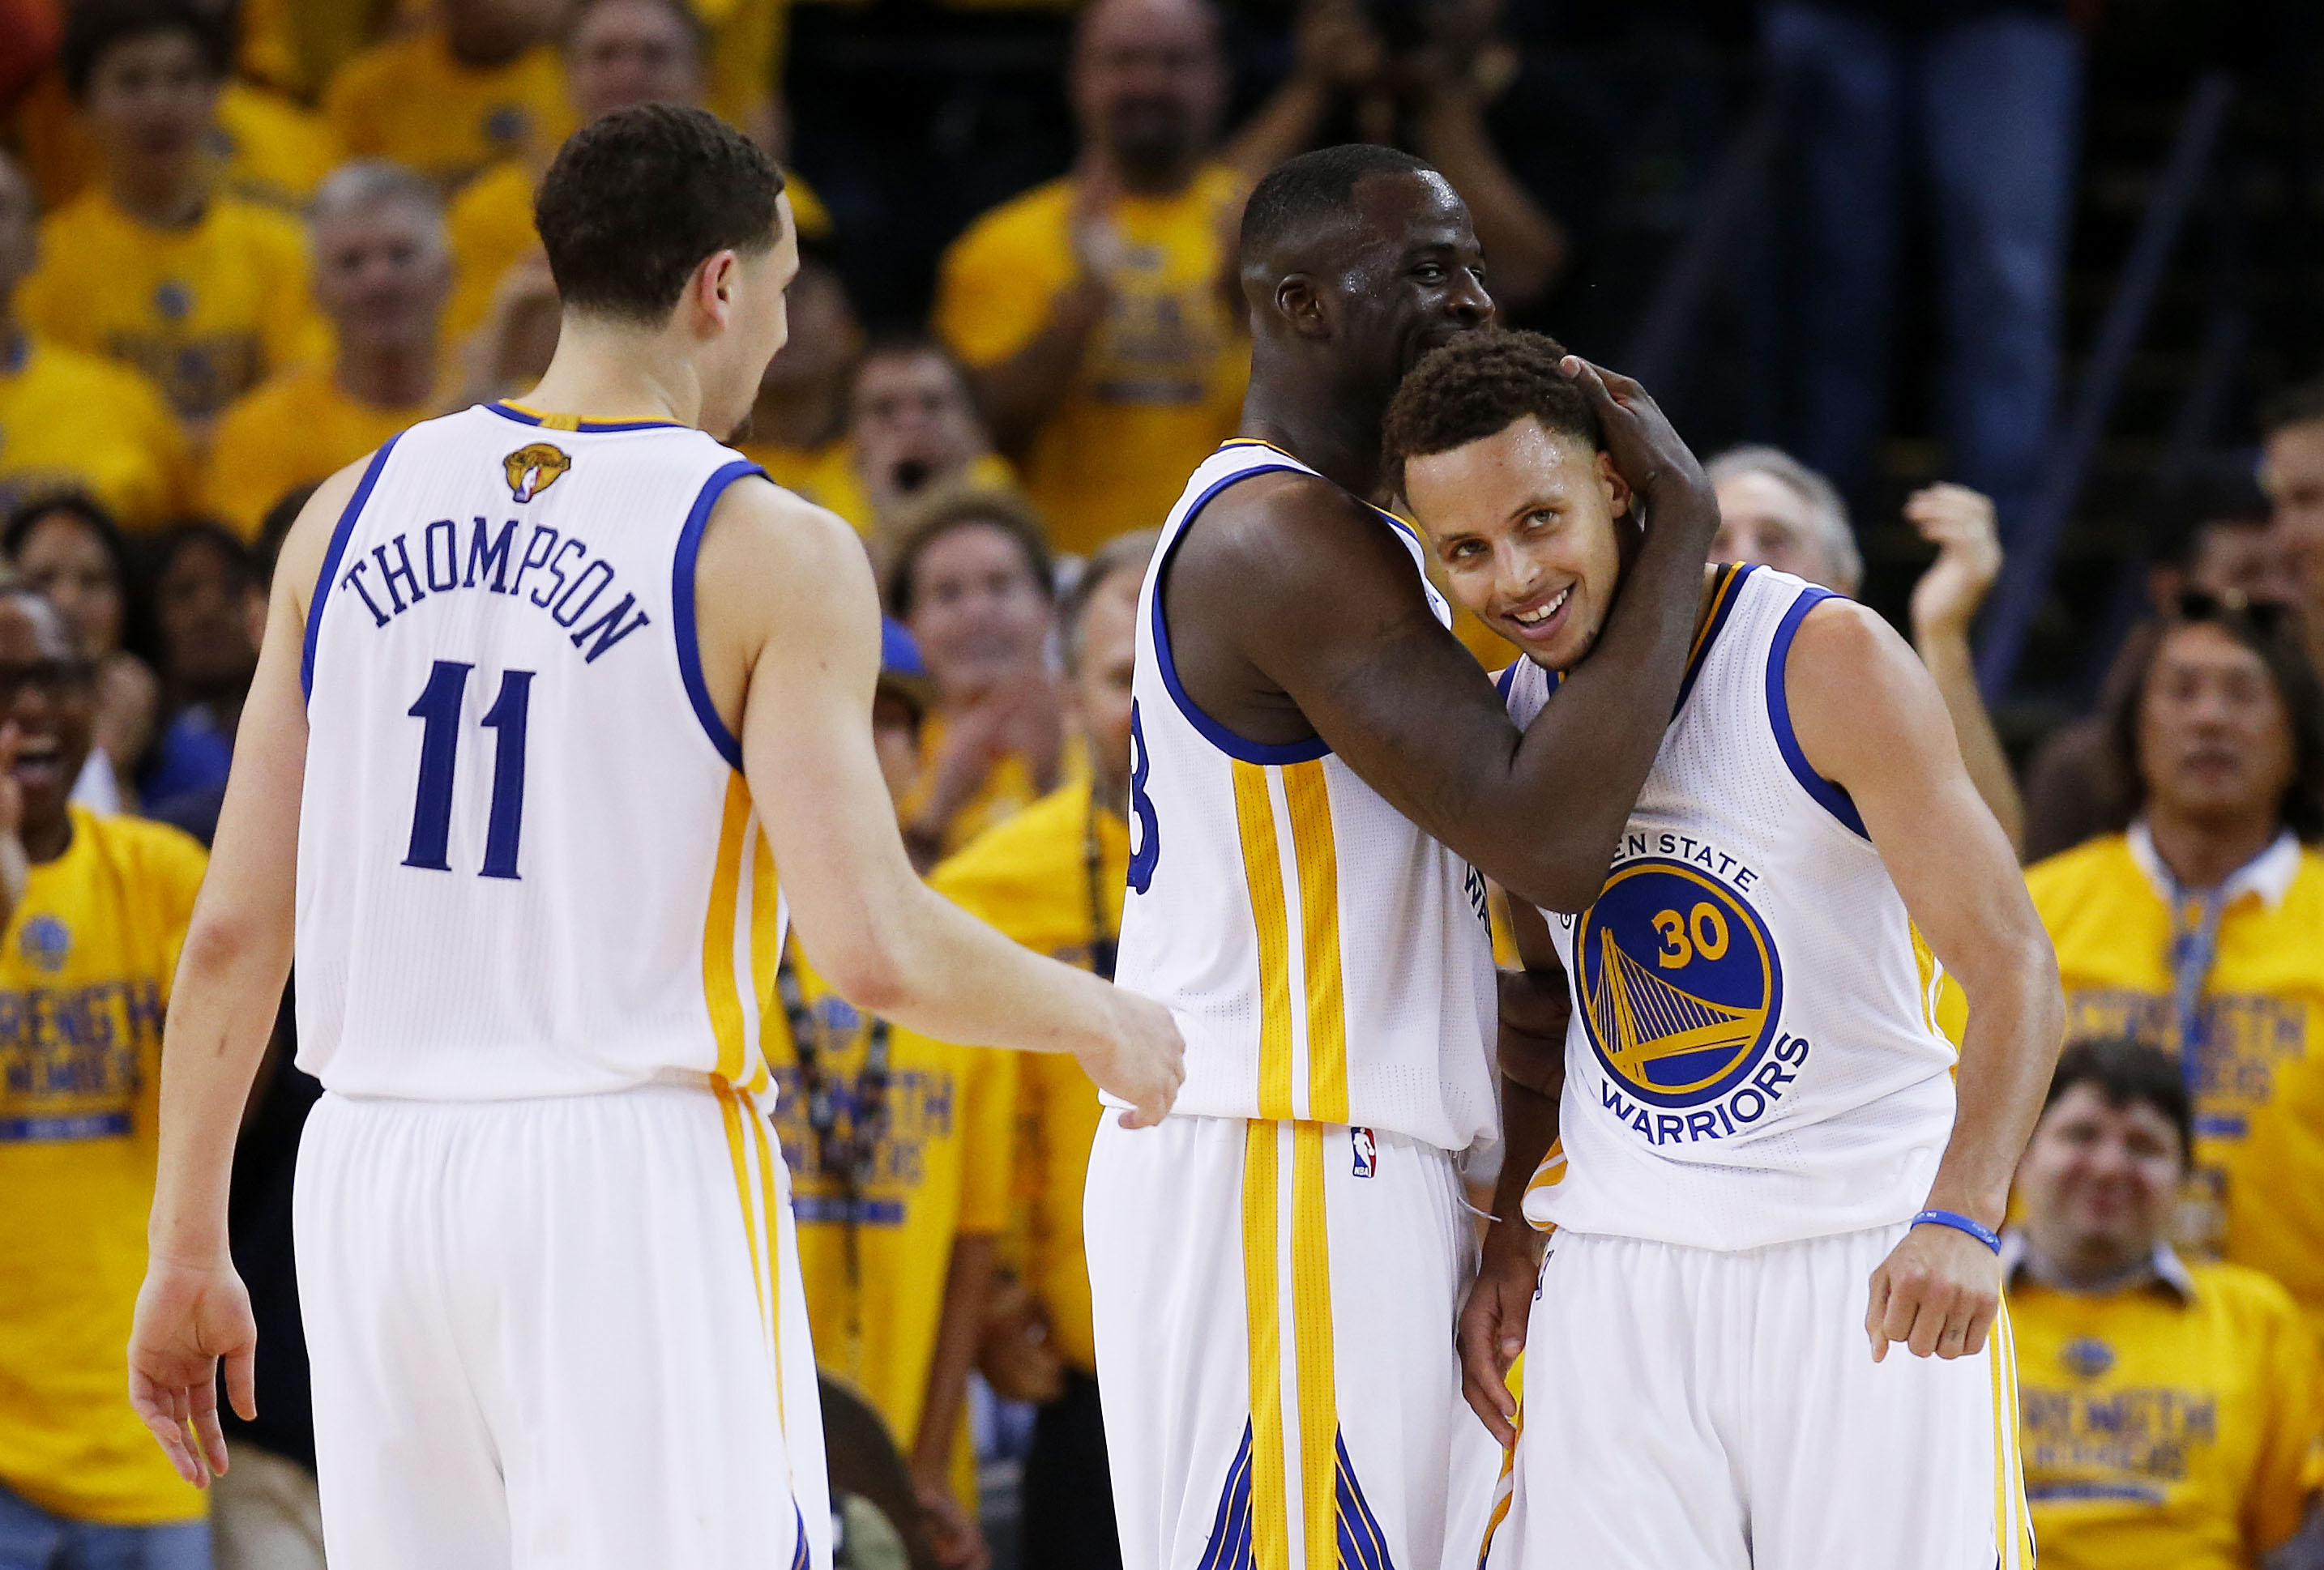 OAKLAND, CA - JUNE 14:  Stephen Curry #30 Draymond Green #23 and Klay Thompson #11 of the Golden State Warriors celebrate late in their 109 to 91 win over the Cleveland Cavaliers during Game Five of the 2015 NBA Finals at ORACLE Arena on June 14, 2015 in